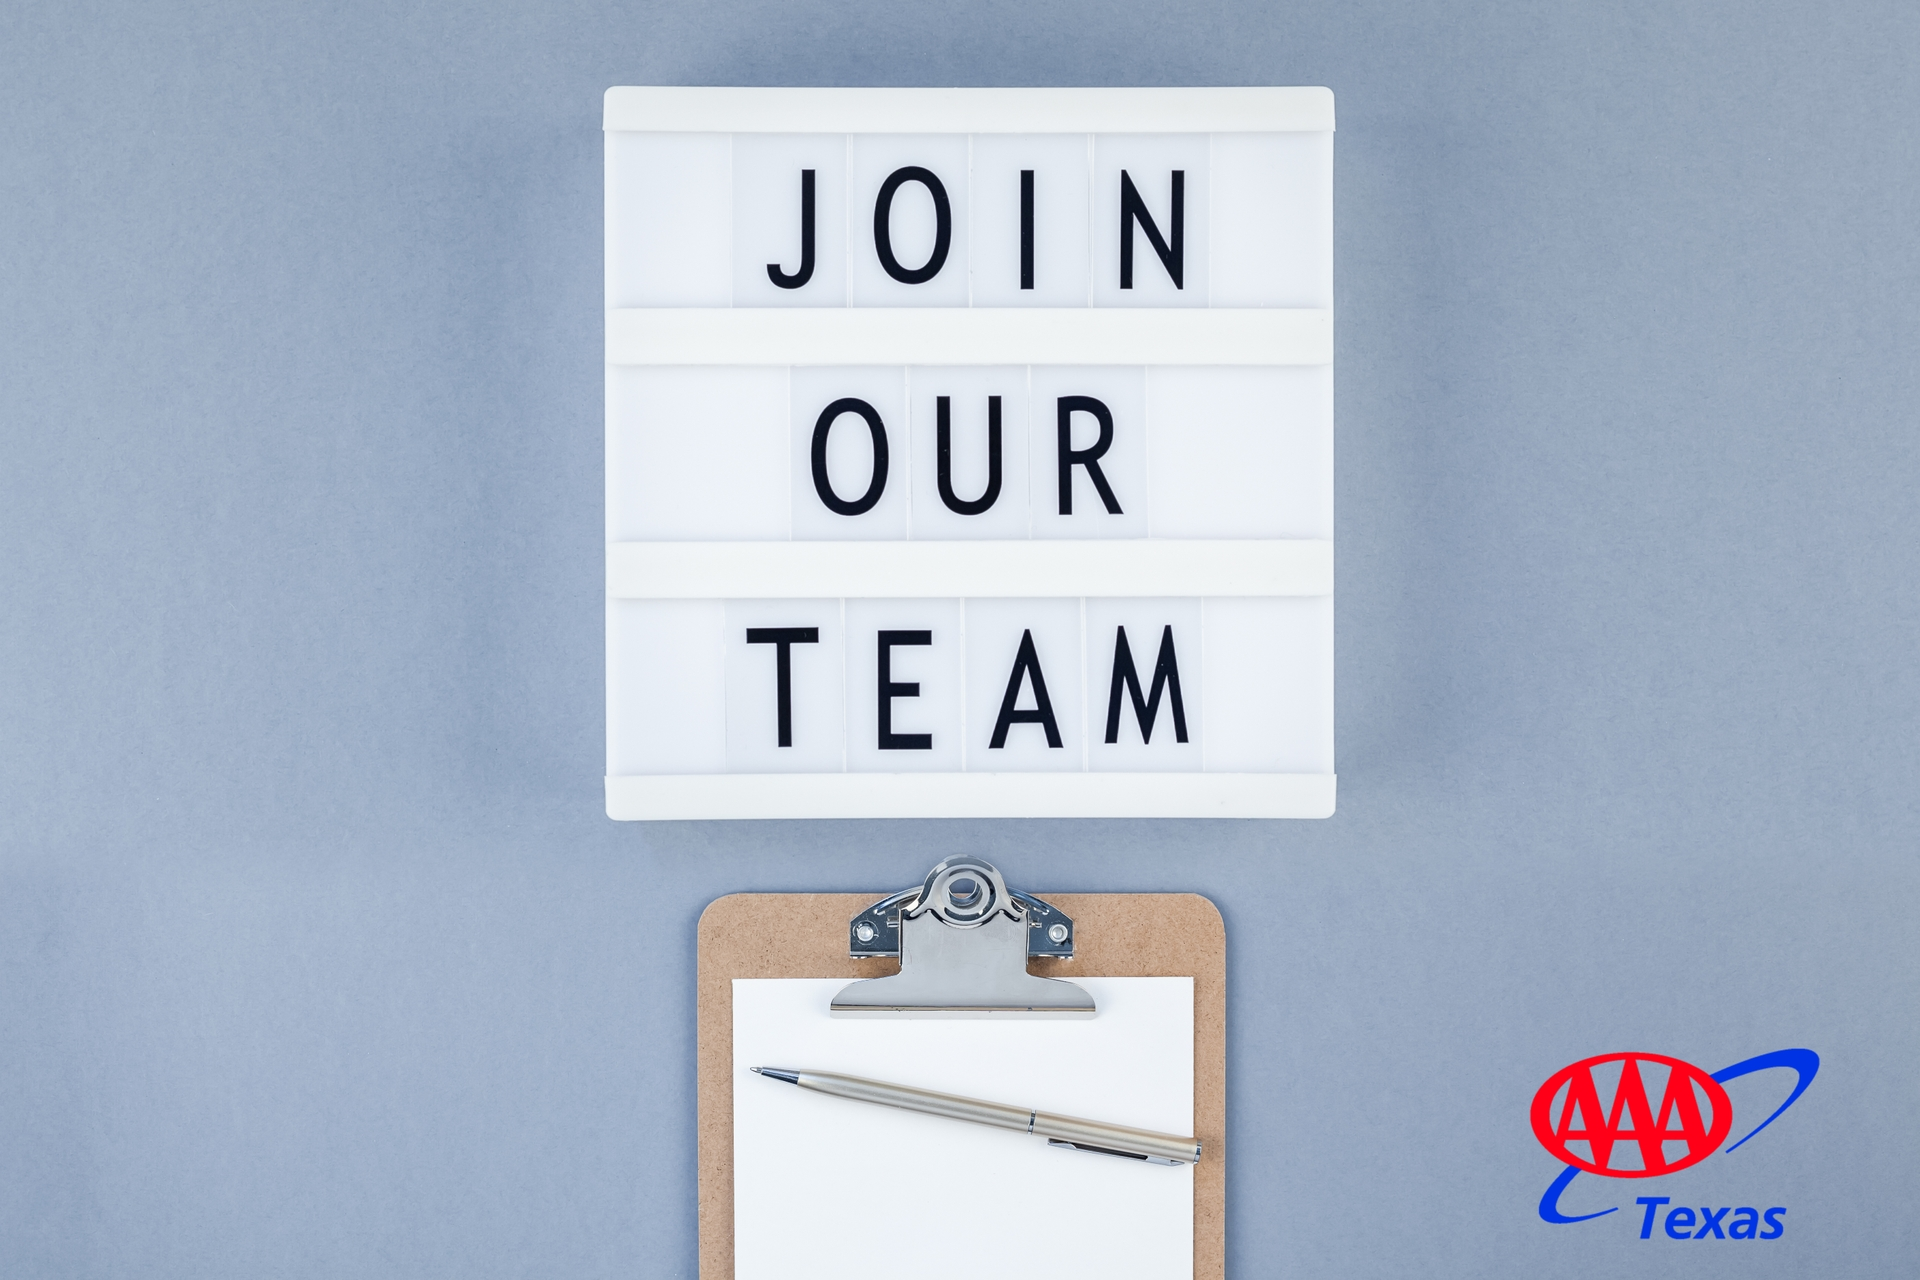 Join our team at AAA Texas